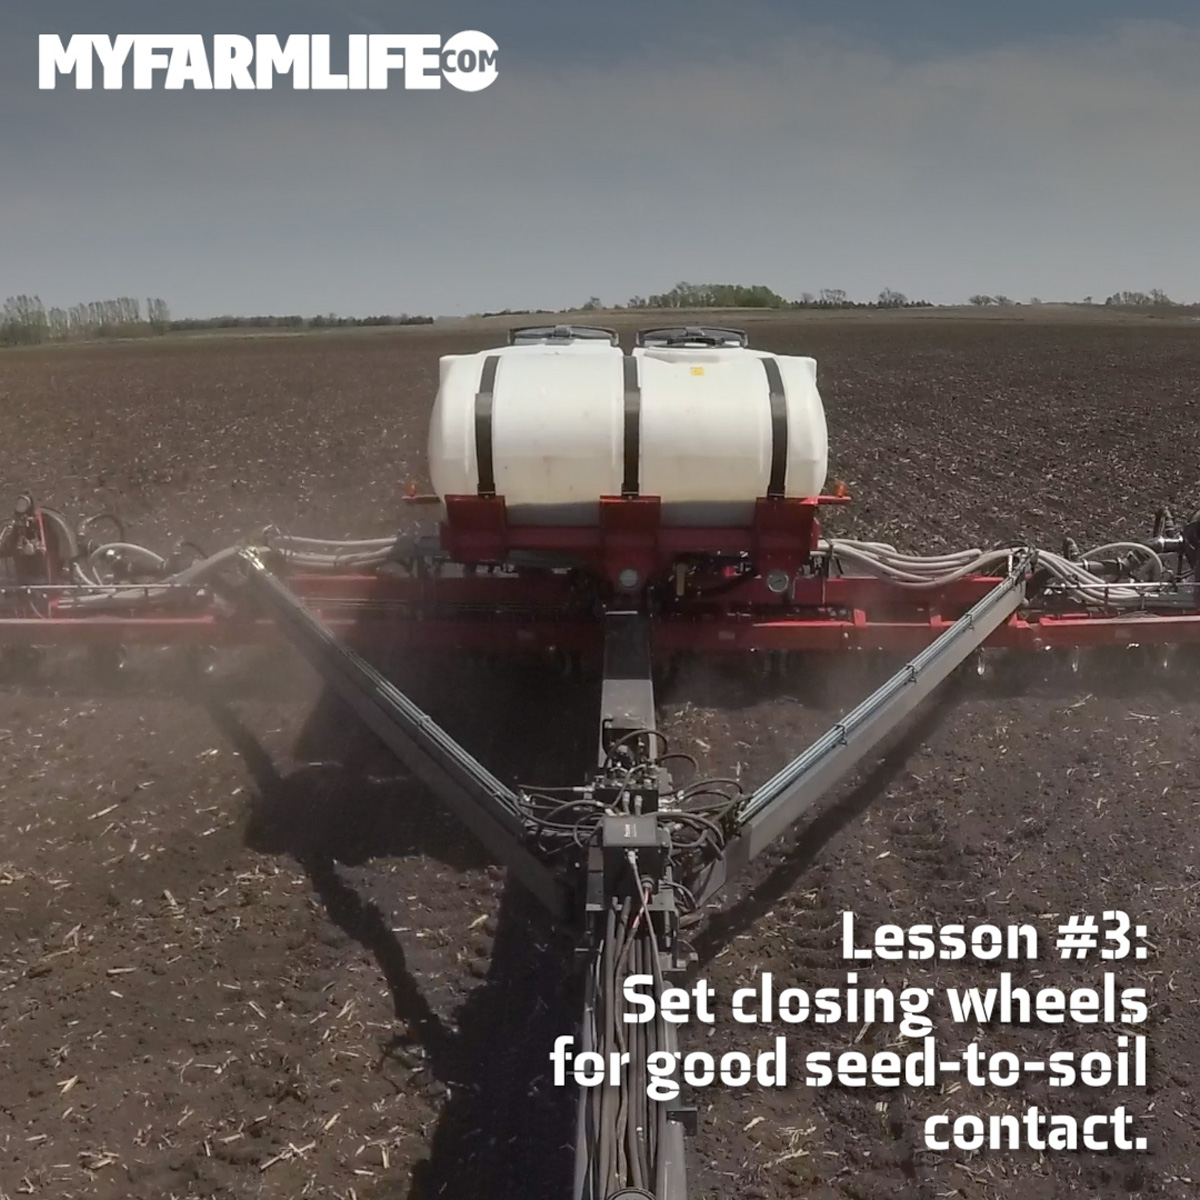 Lesson #3: Set closing wheels for good seed-to-soil contact.